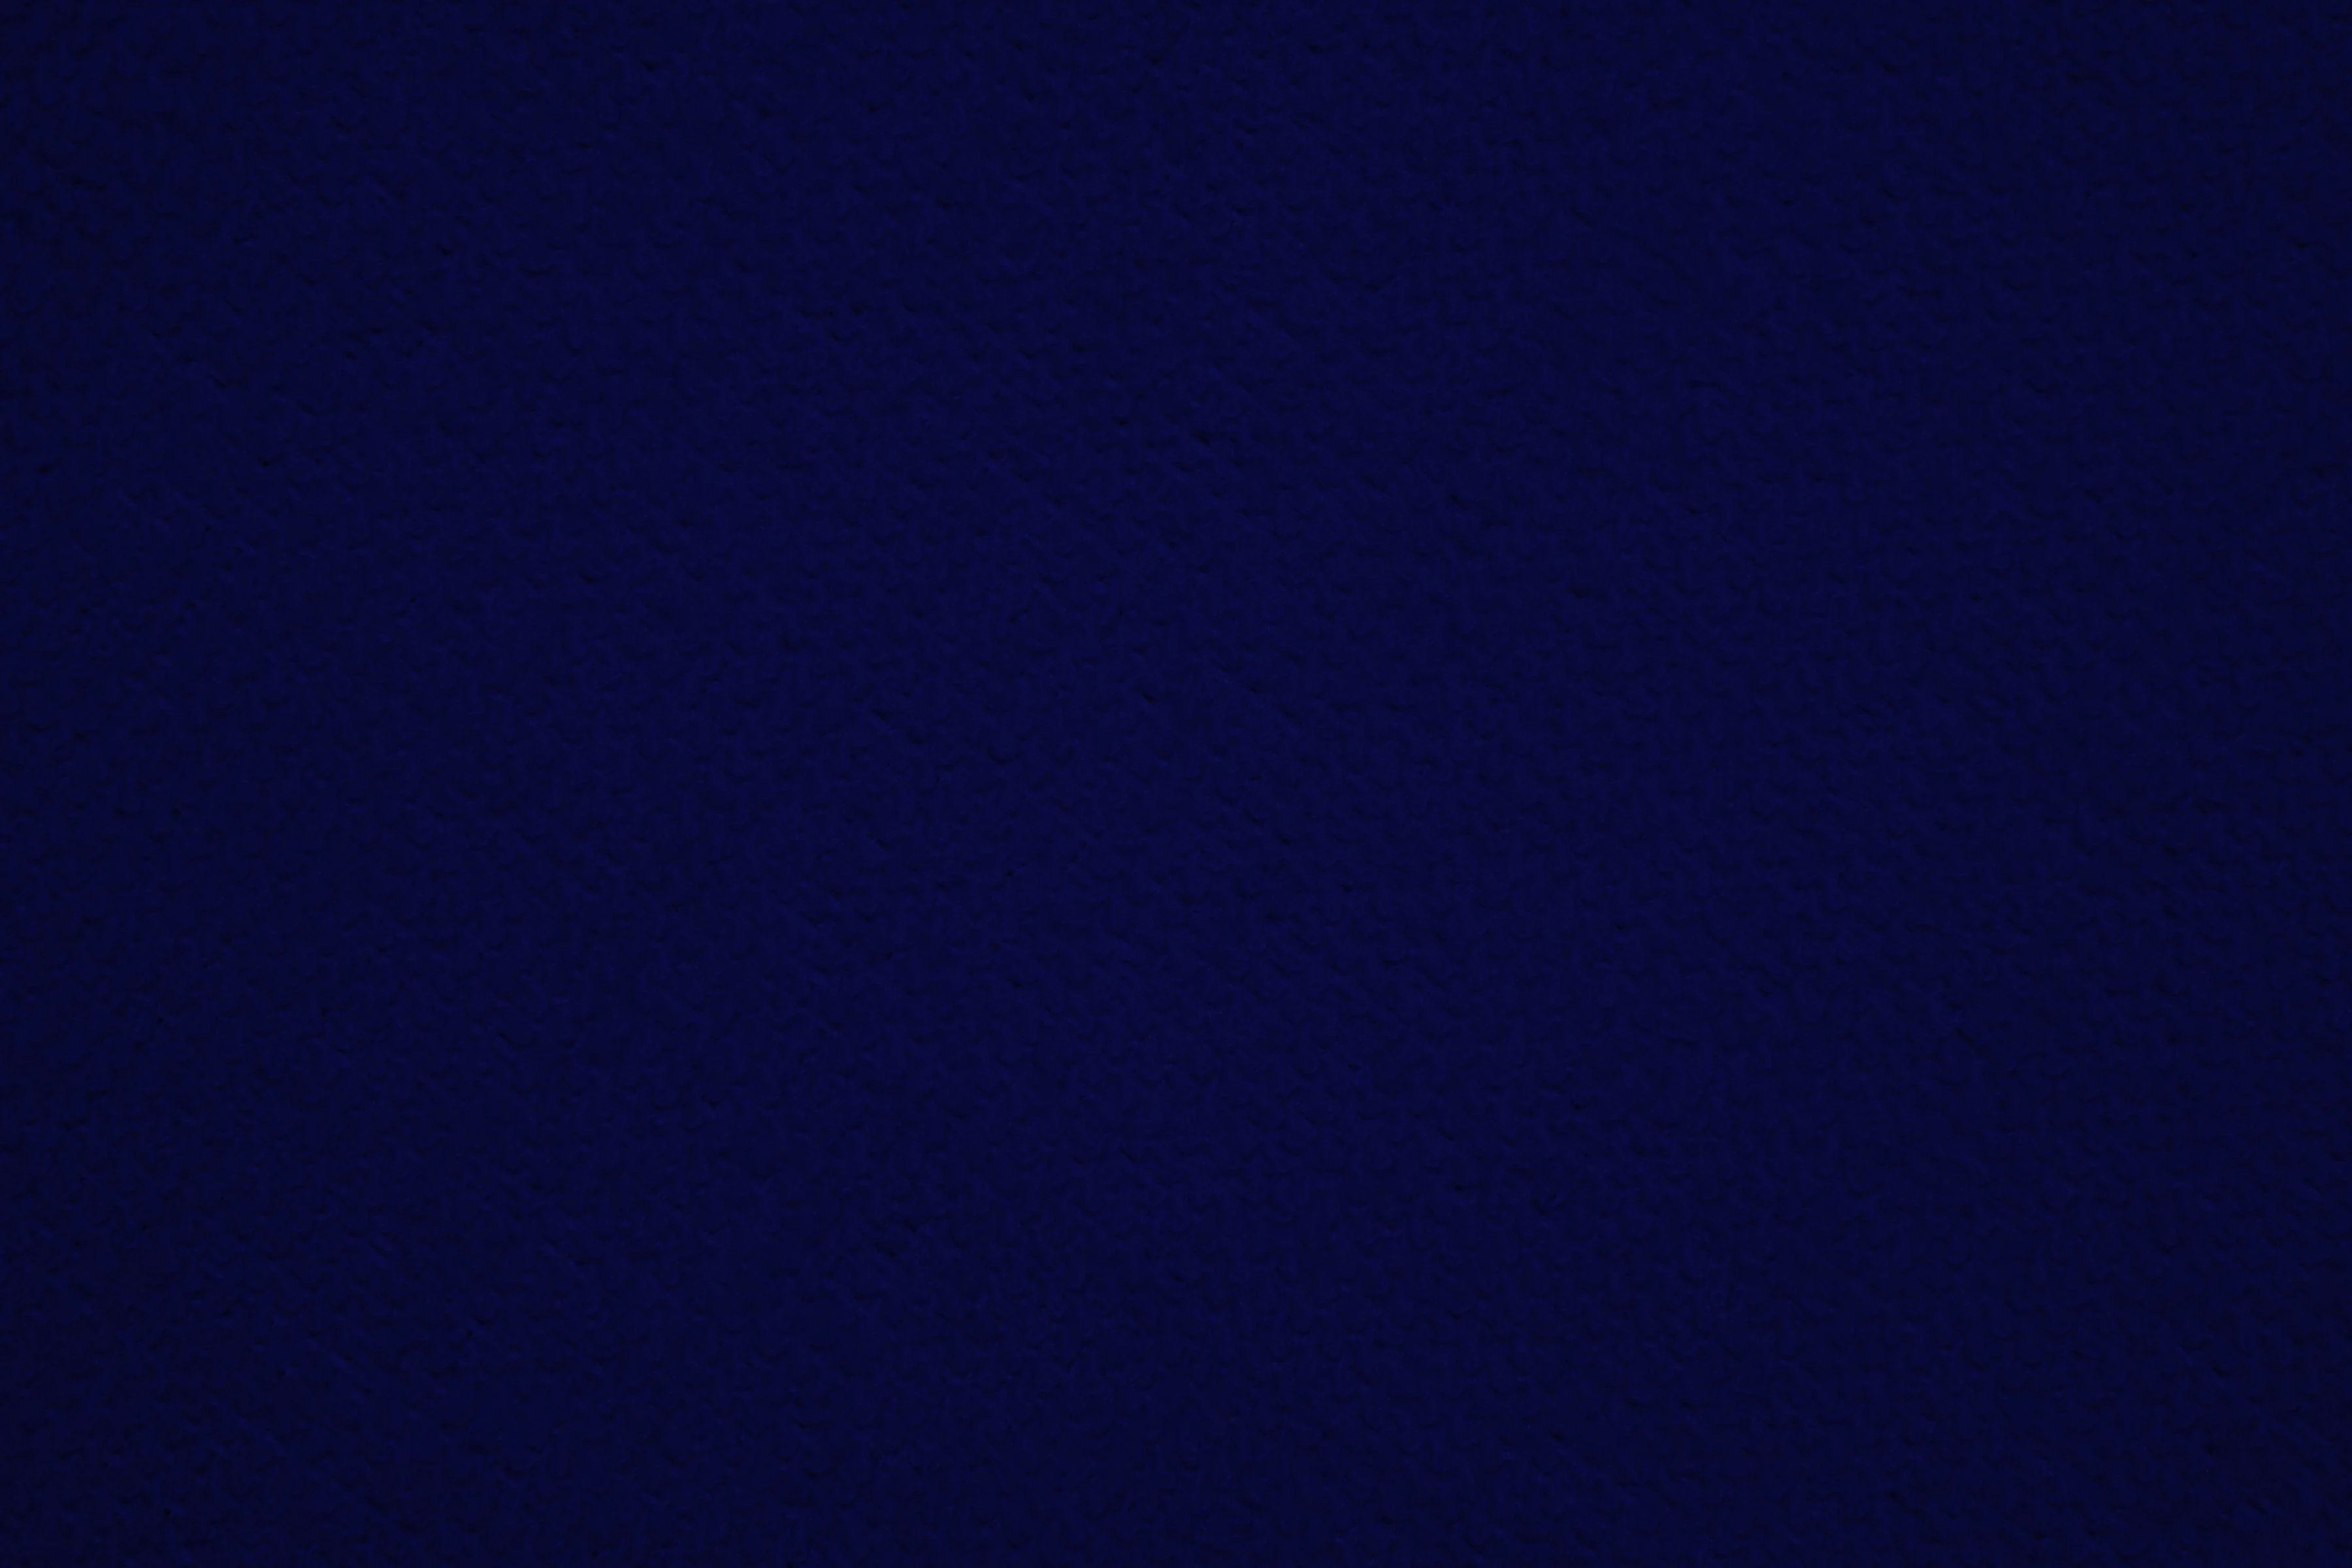 Navy Blue Navy Blue Backgrounds Wallpaper Cave